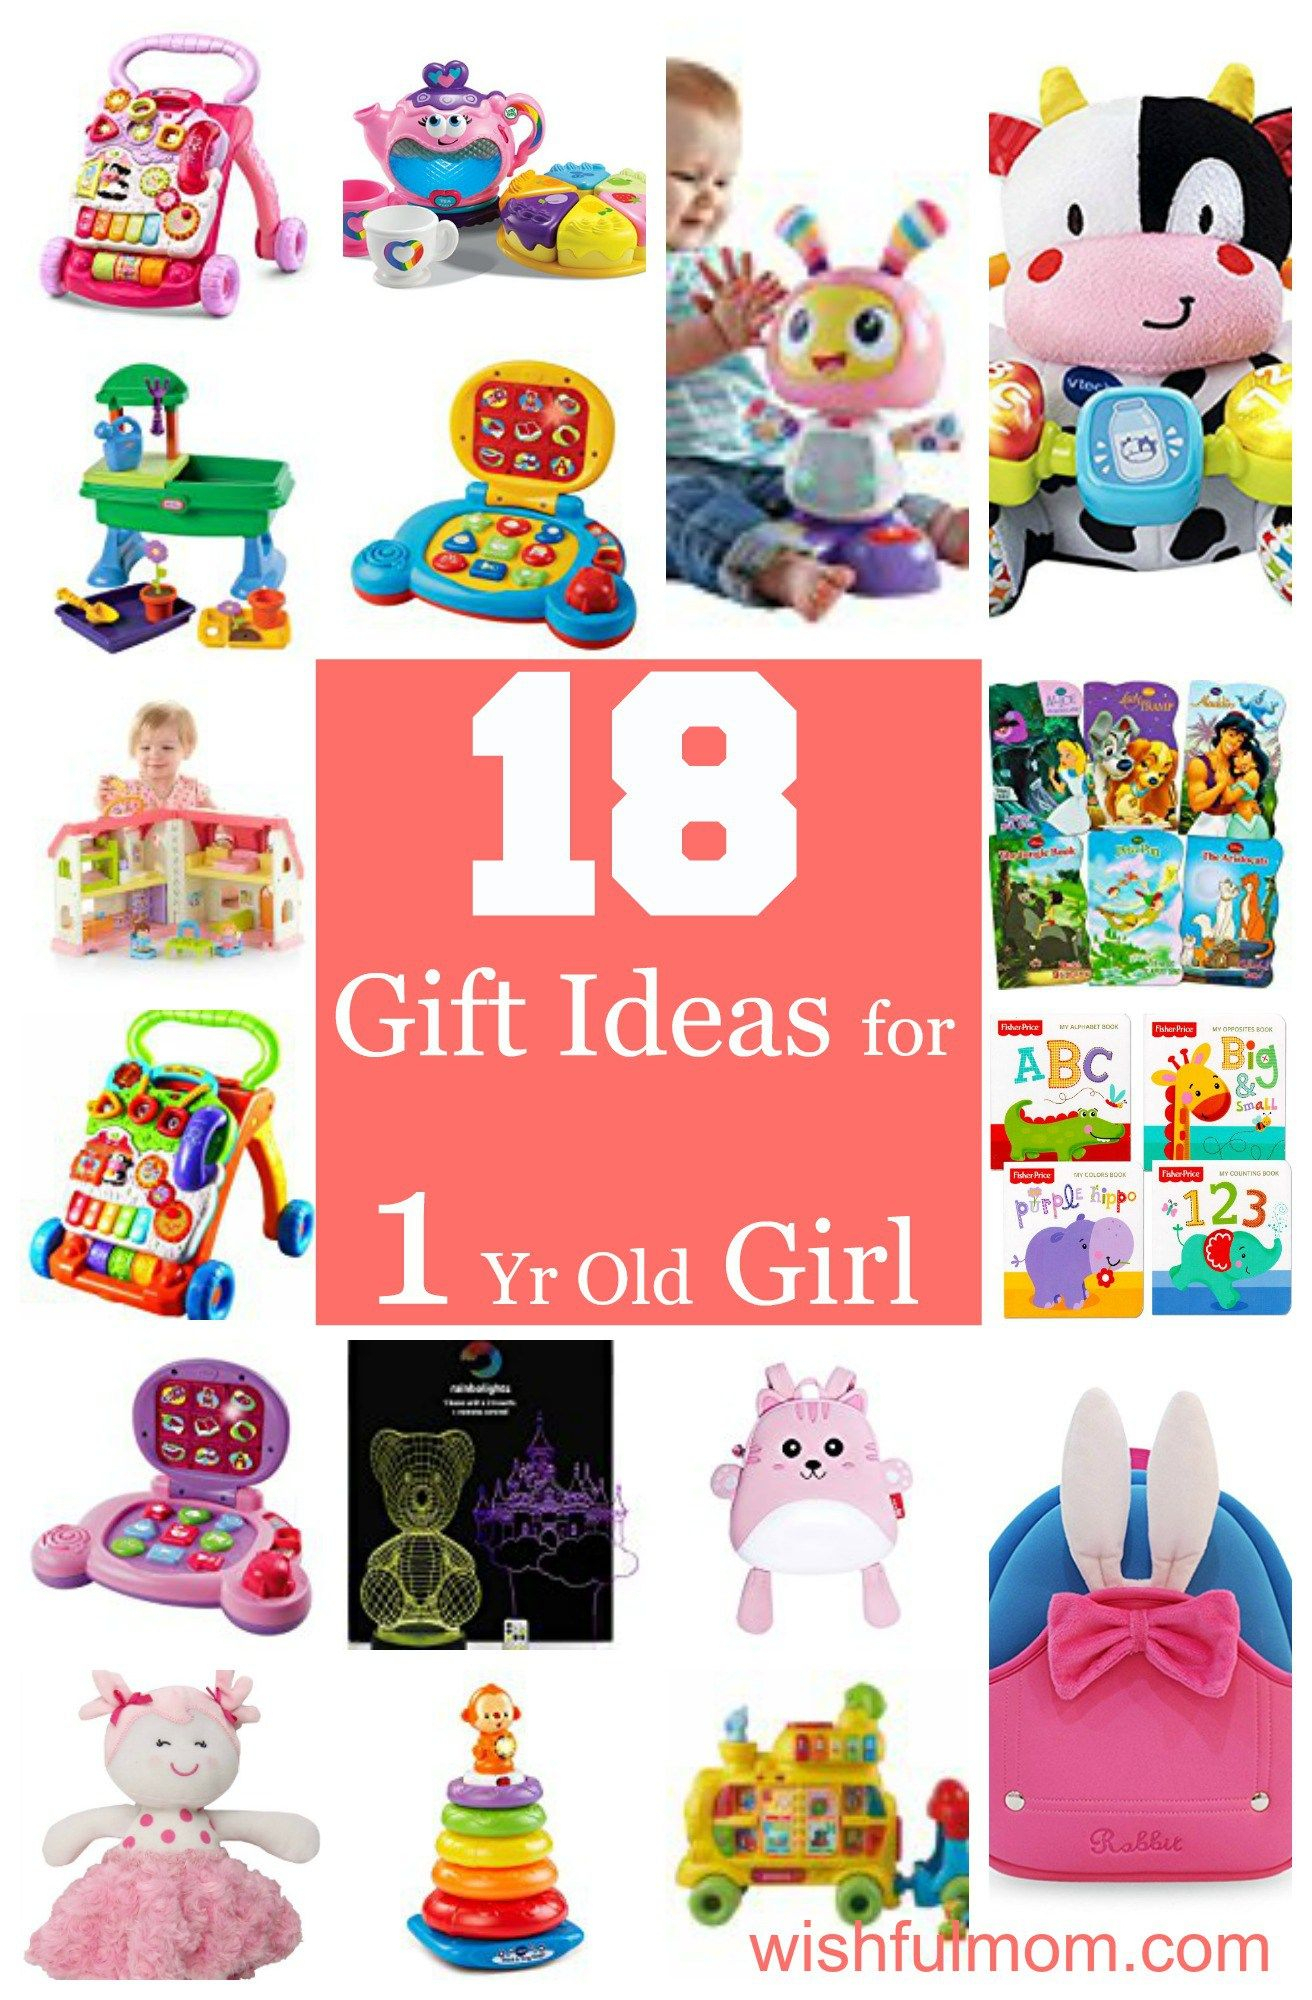 10 Lovable Gift Ideas For A 1 Year Old Girl 18 gift ideas for a one year old girl 2020